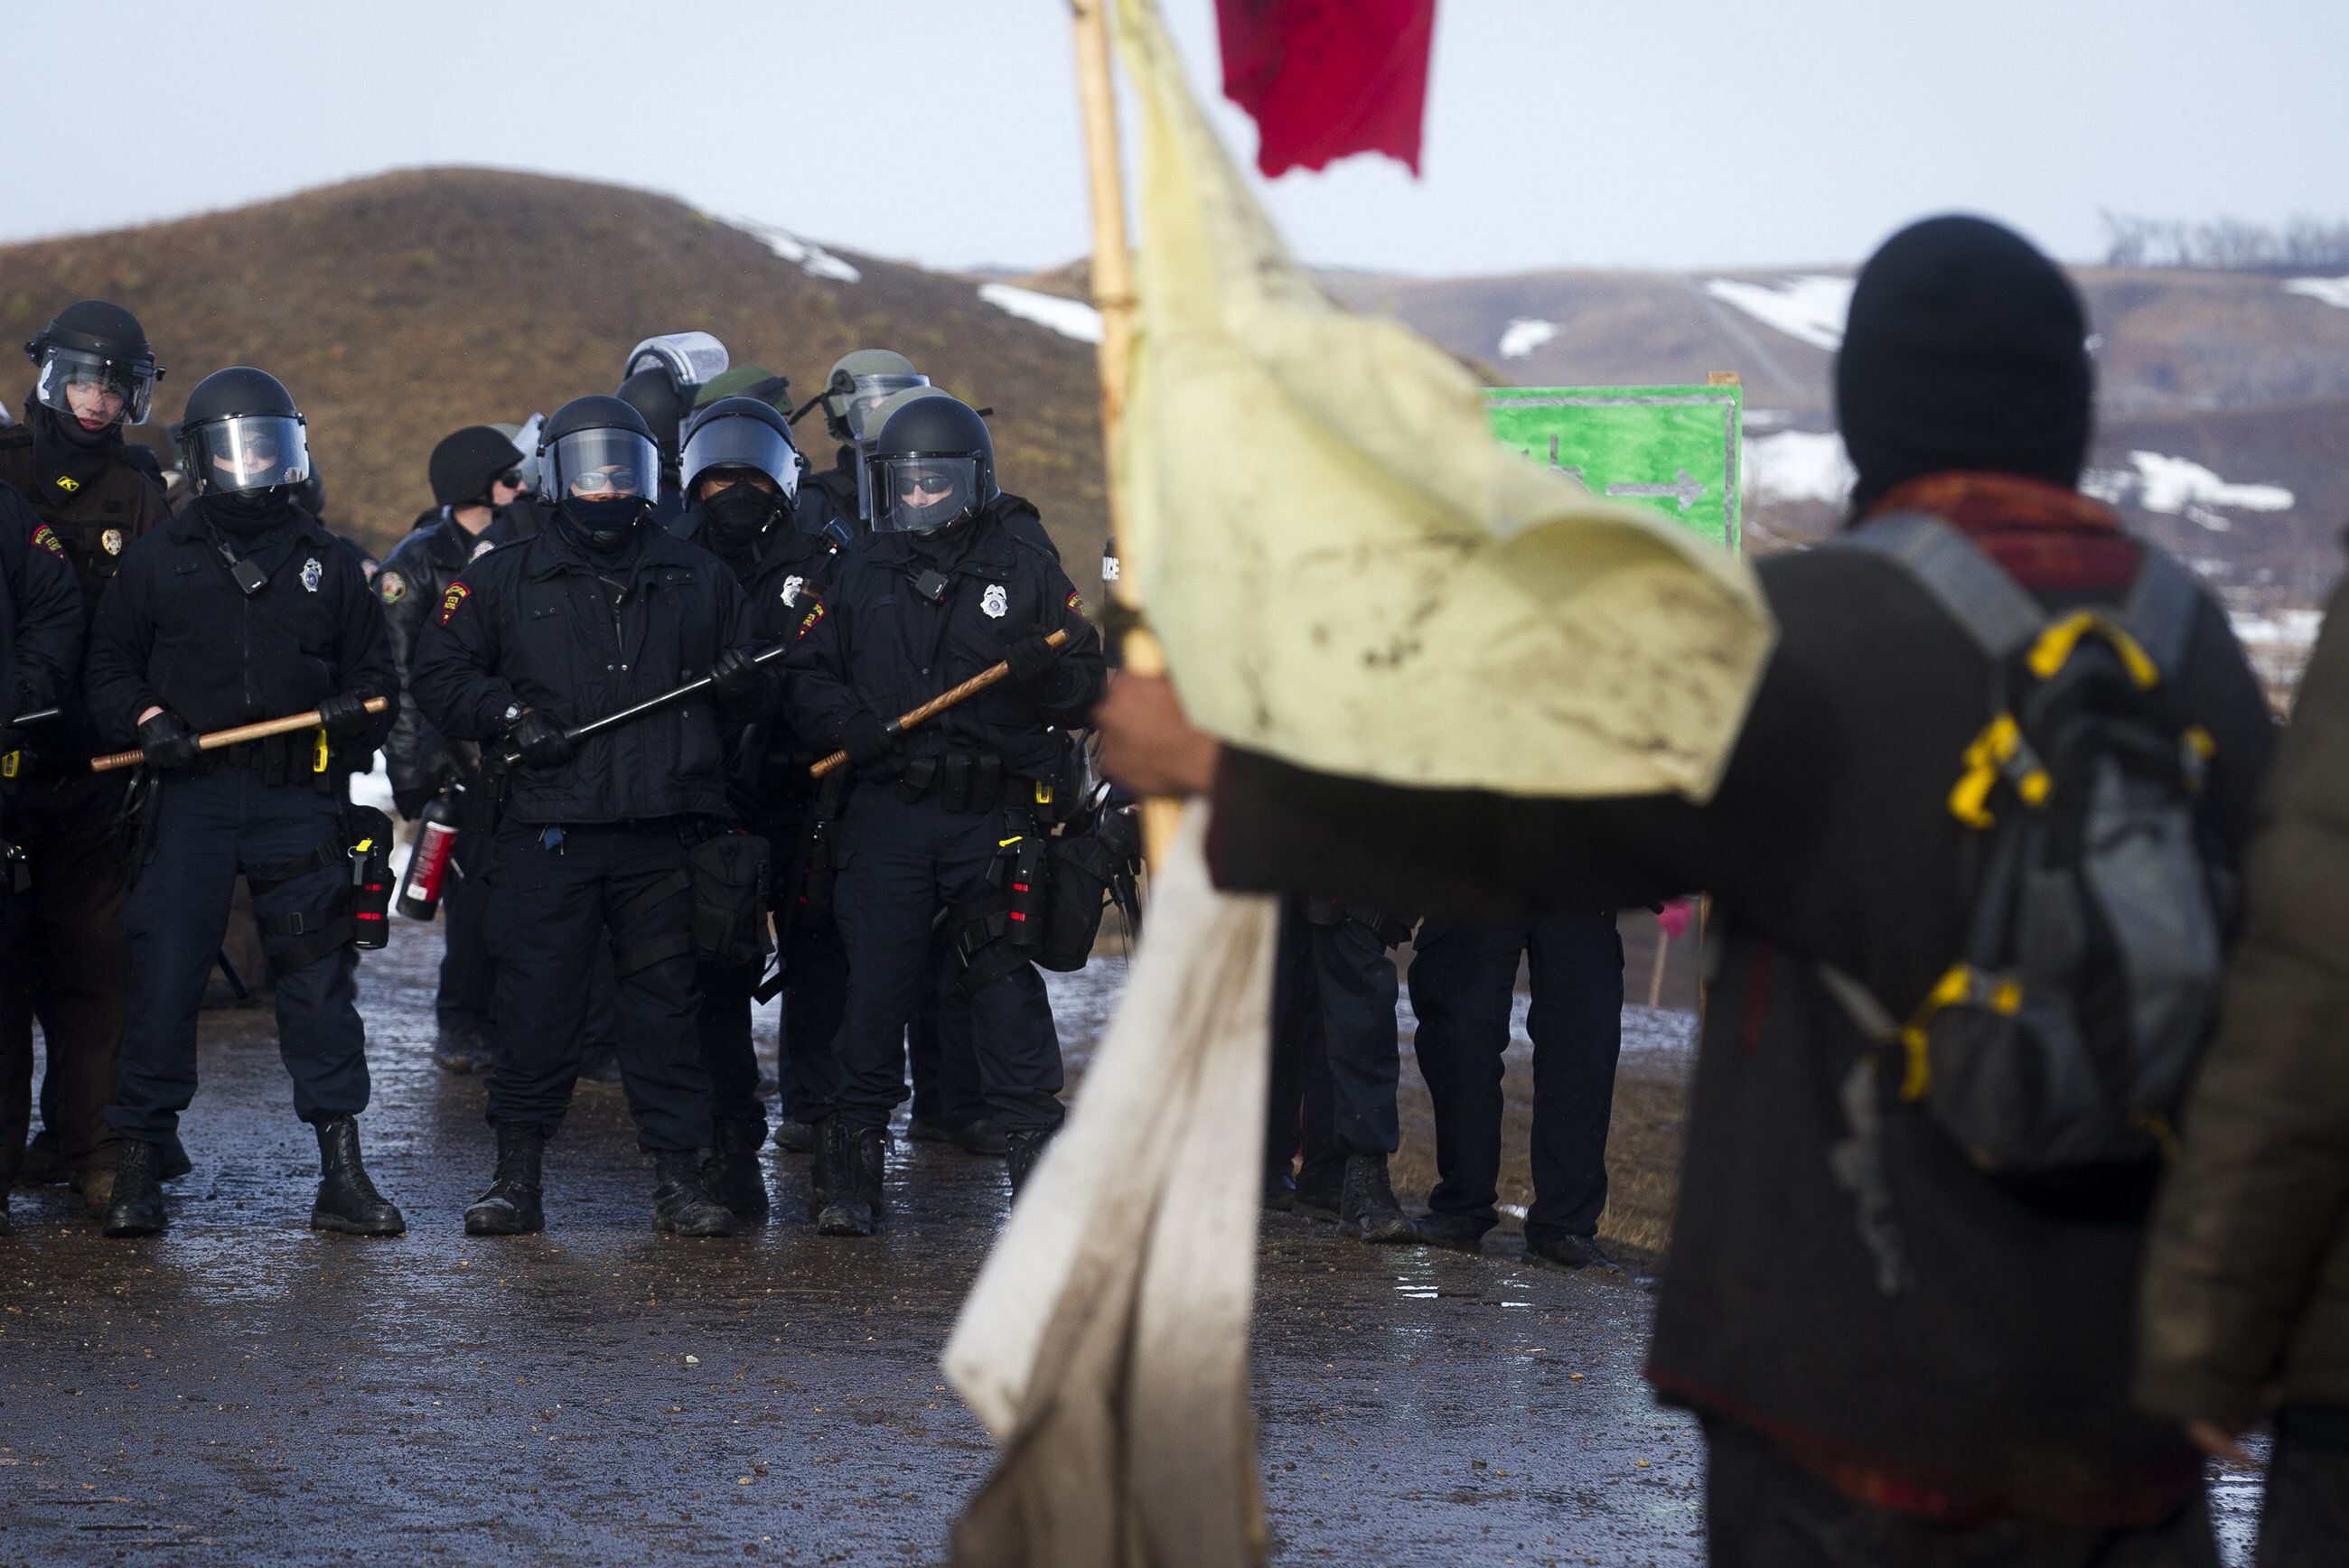 Police Make More Arrests As They Raid Dakota Access Protest Camp For Second